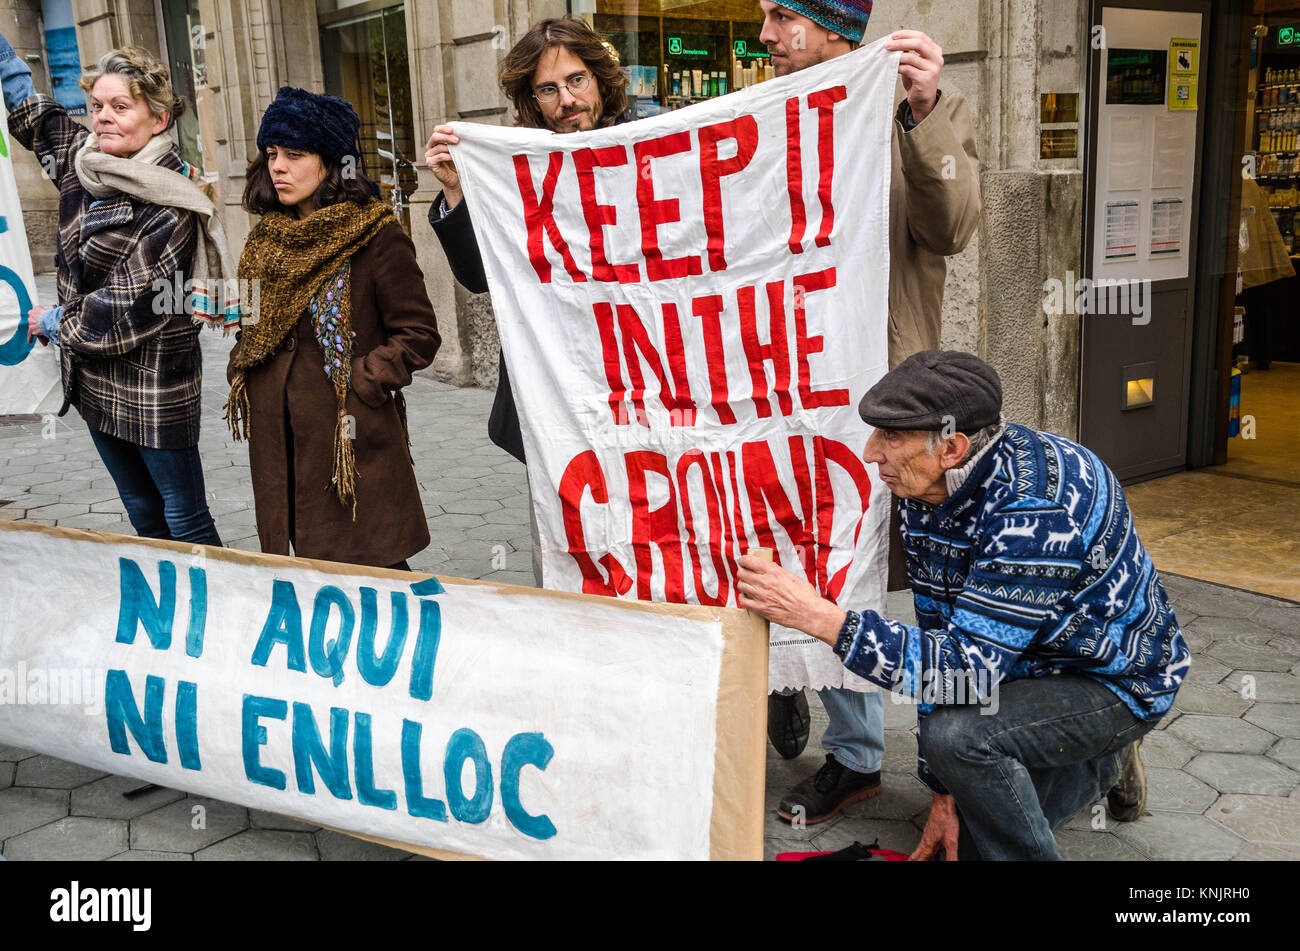 Barcelona, Catalonia, Spain. 12th Dec, 2017. Several demonstrators seen with banners in favour of renewable energies. - Stock Image